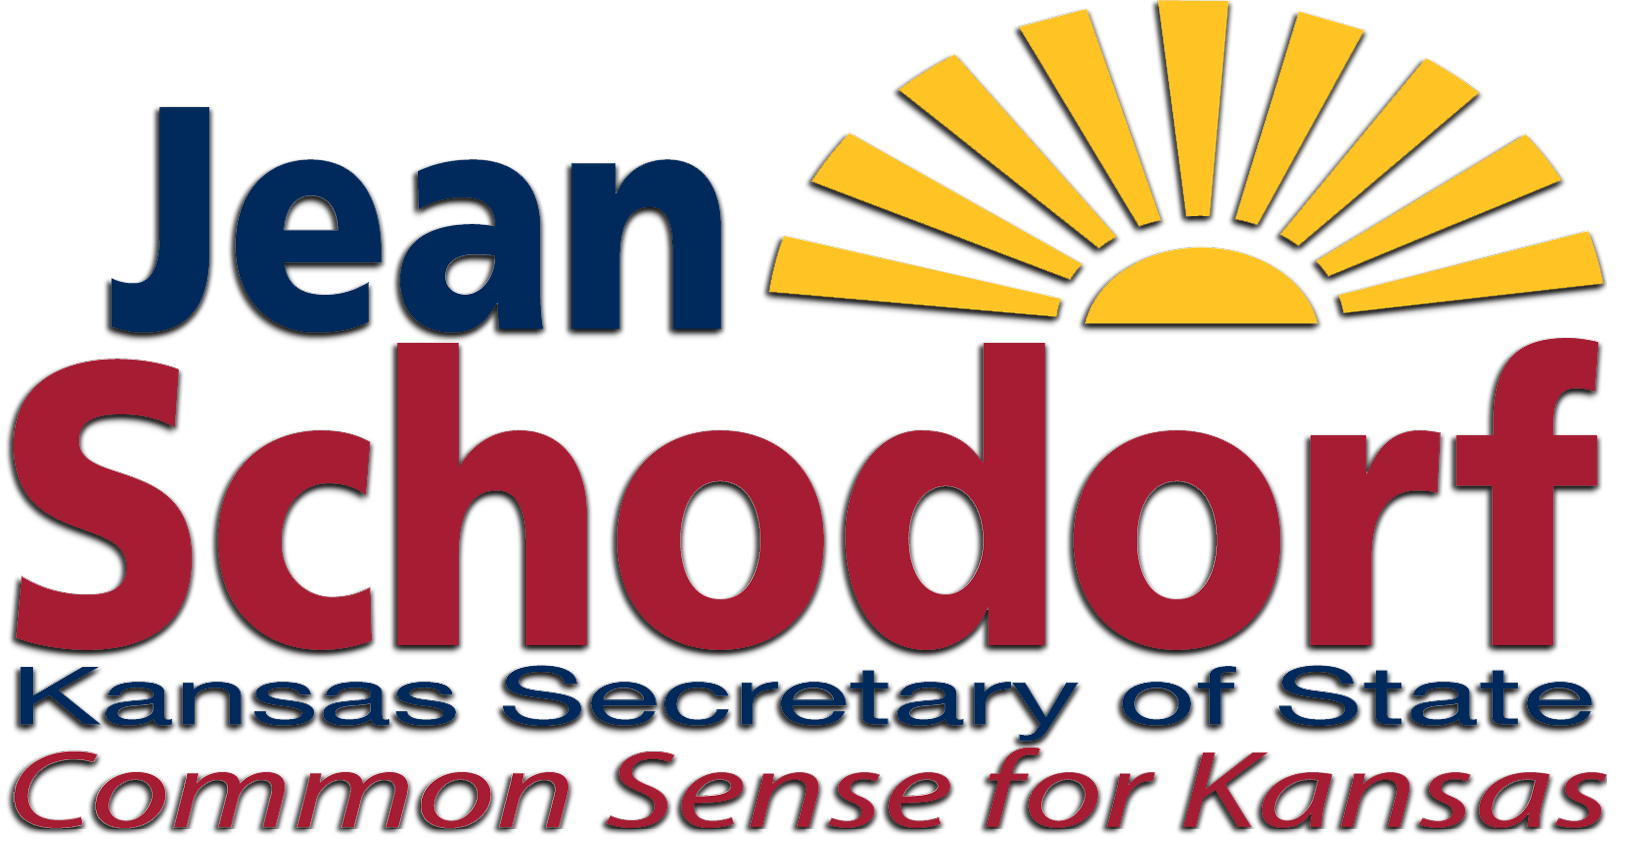 Jean Schodorf for Kansas Secretary of State